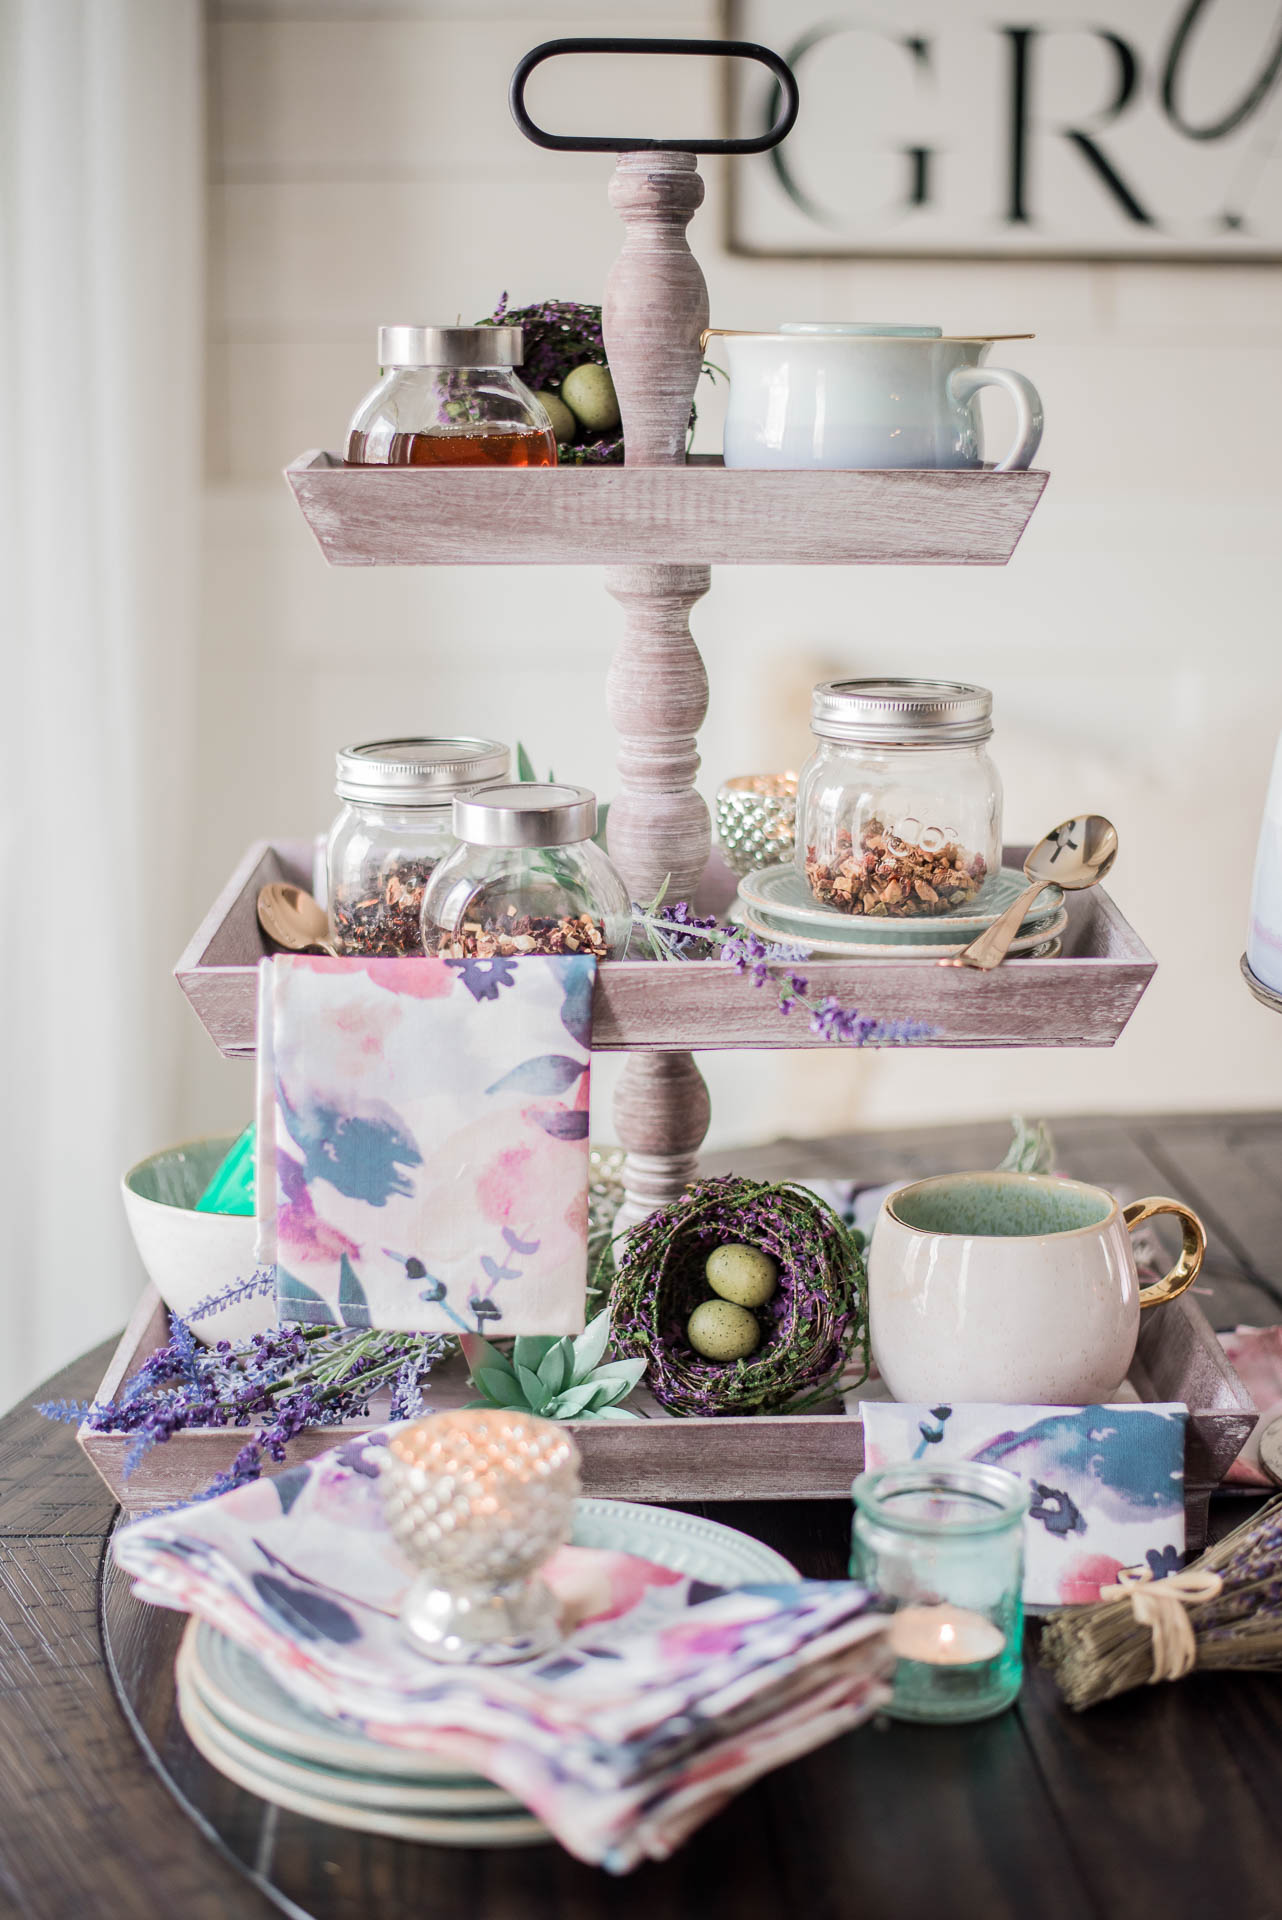 Decorating cake stands  4 ways that dont involve cake  Modern Glam